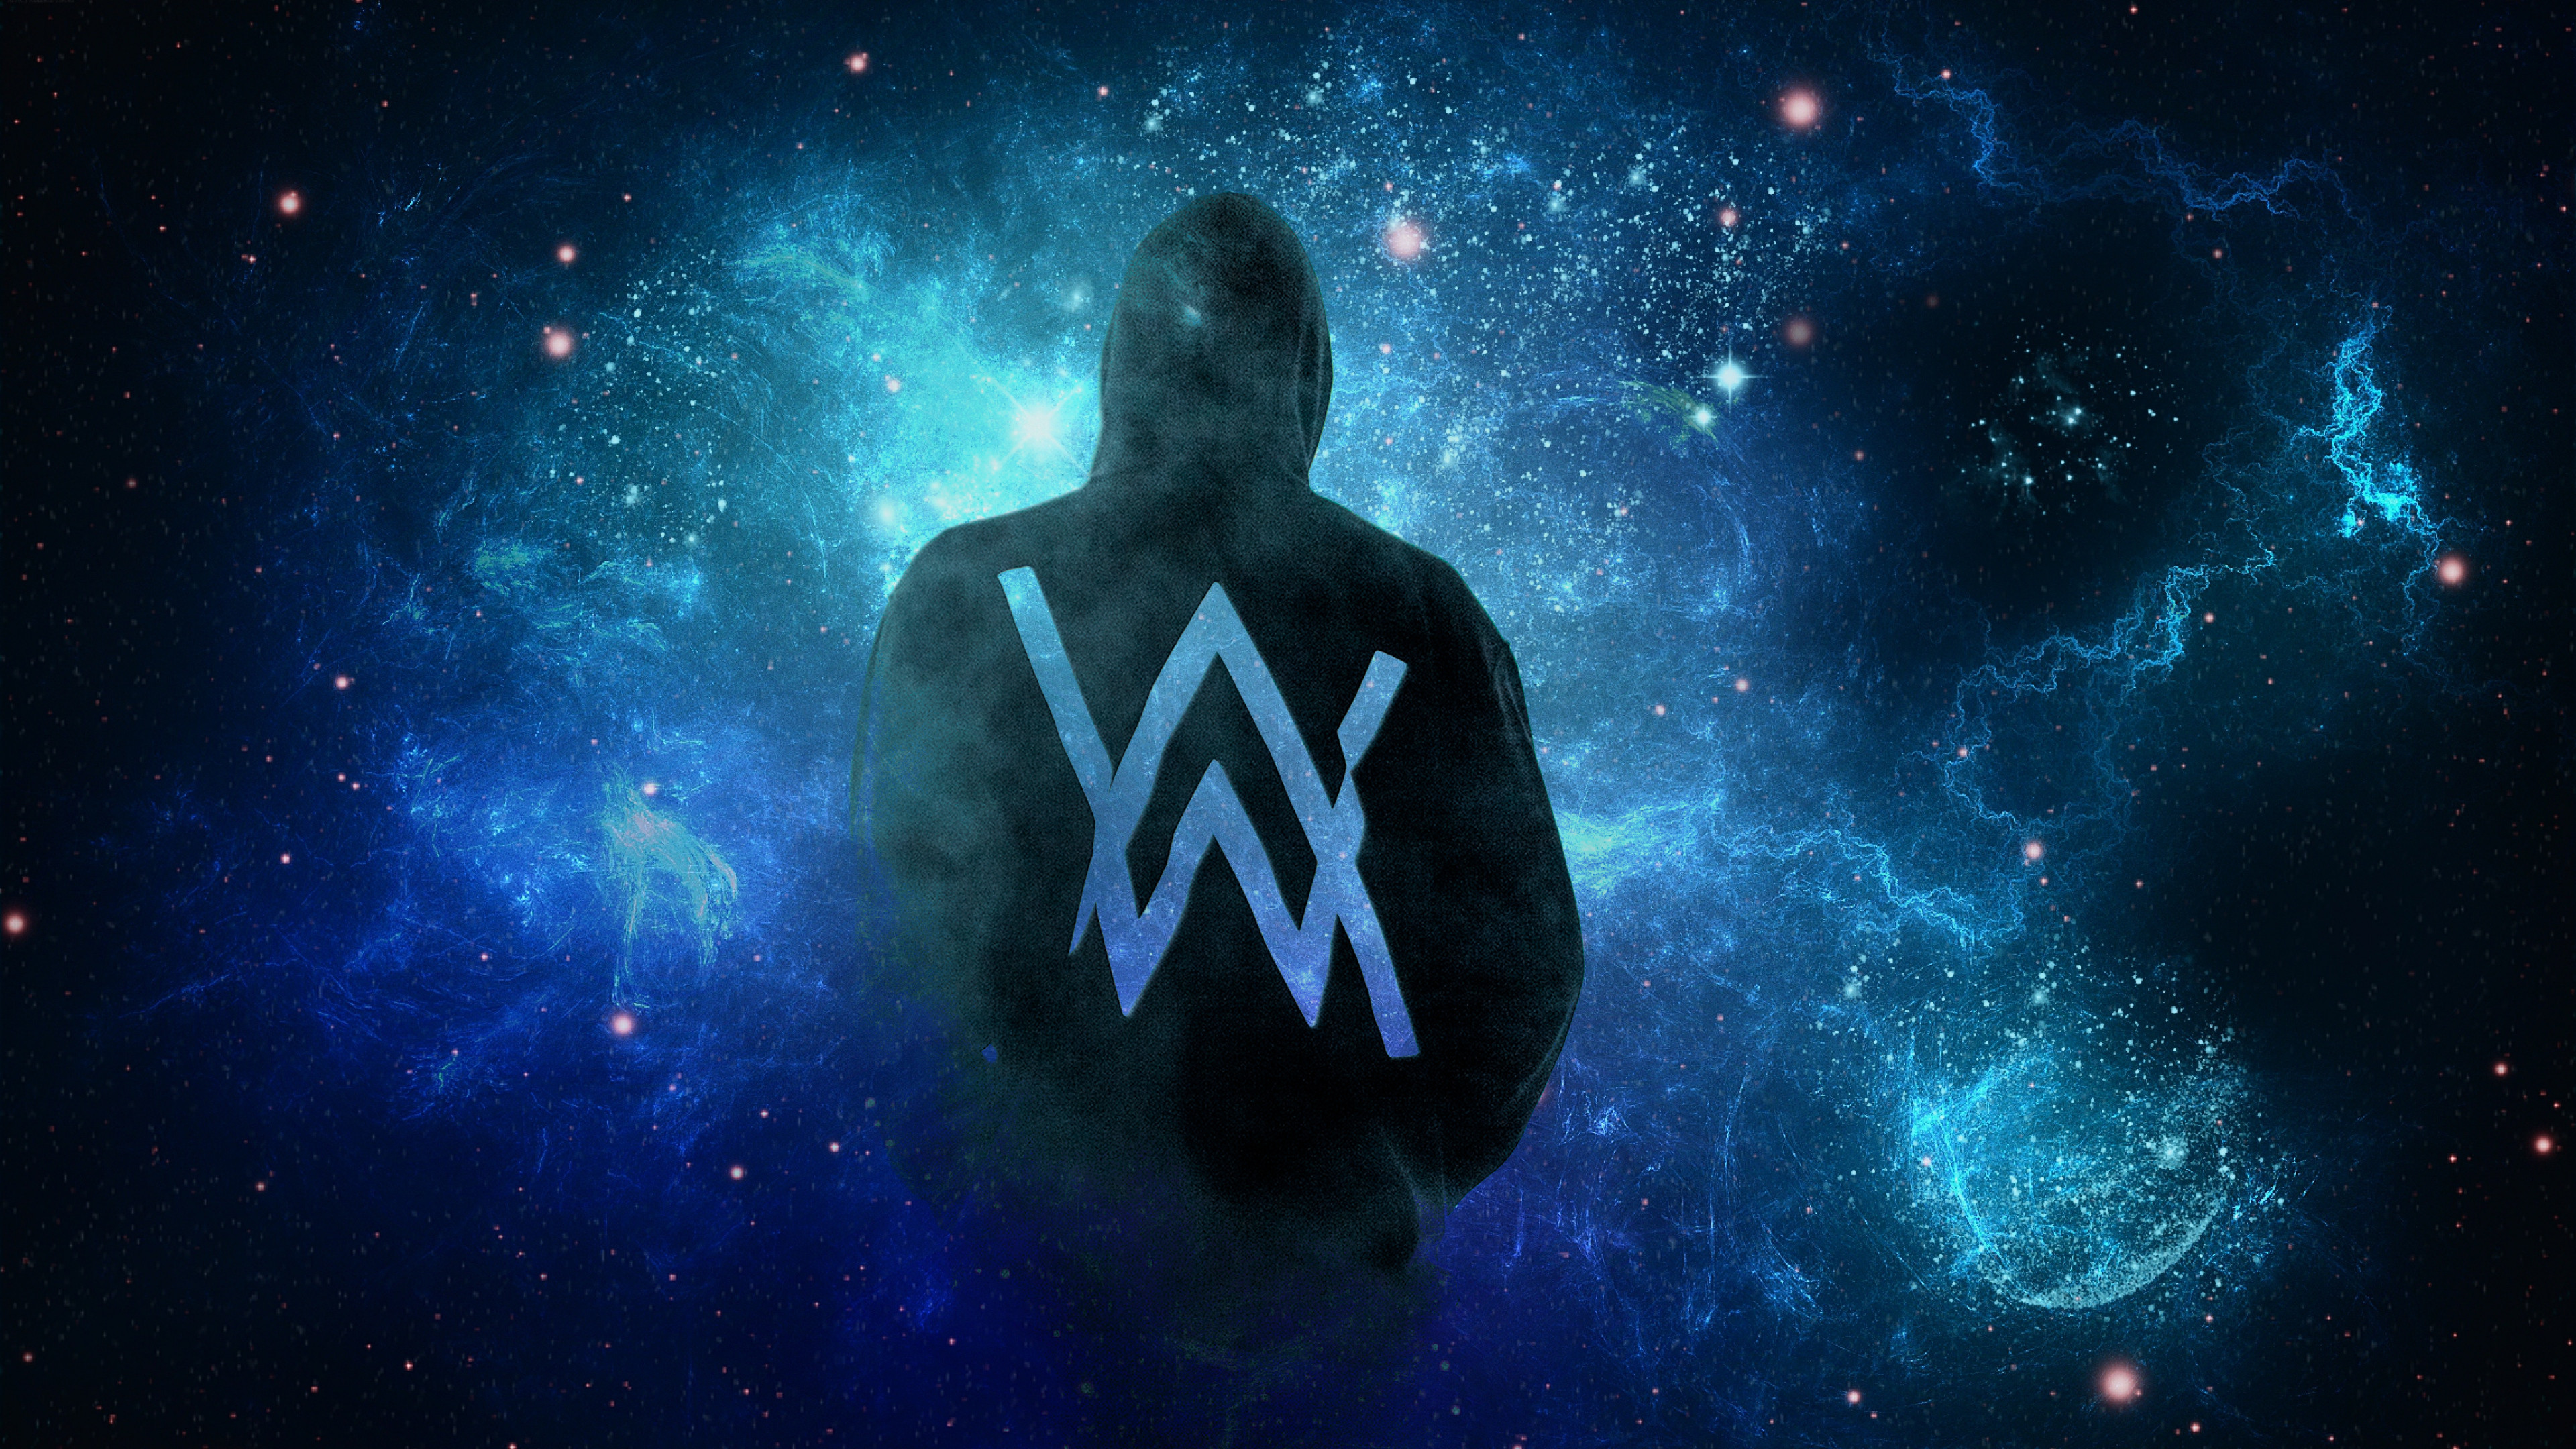 Alan walker wallpapers images photos pictures backgrounds - Music hd wallpapers free download ...